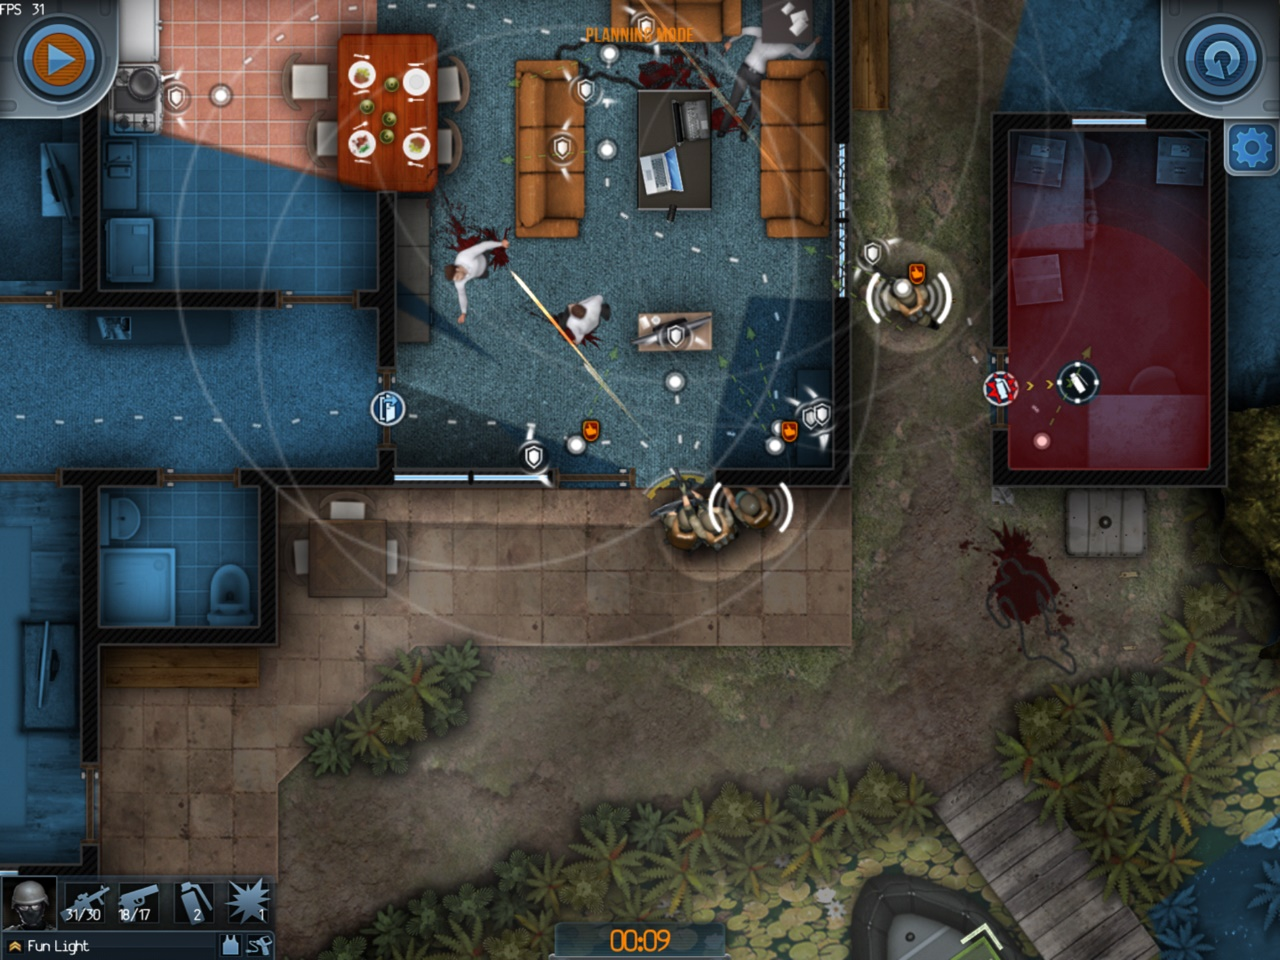 Door Kickers is now available for iPhone after releasing on iPad and Android back in 2015